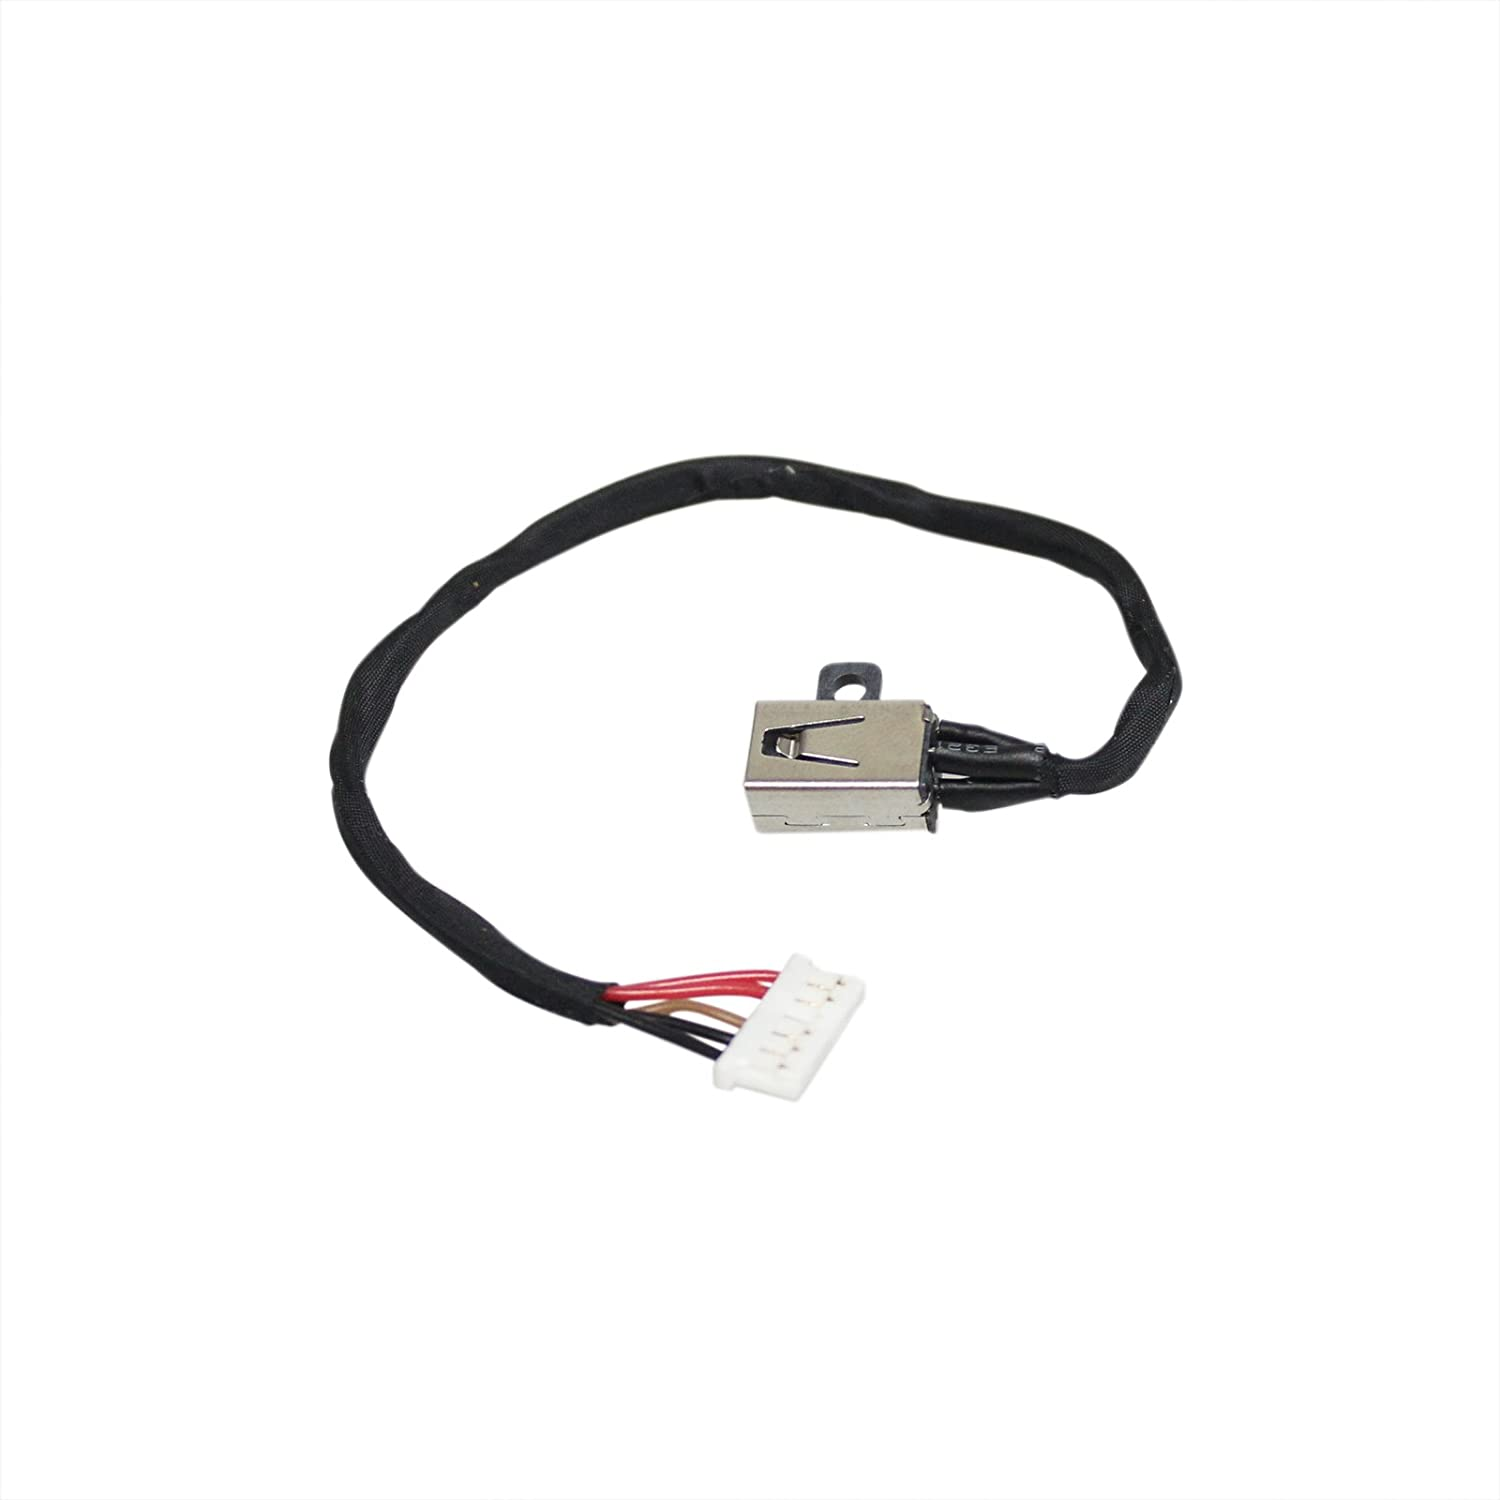 GinTai DC in Power Jack with Cable Socket Plug Connector Port Replacement for Dell Inspiron 17 i5758-5714s 37KW6 DC30100UB00